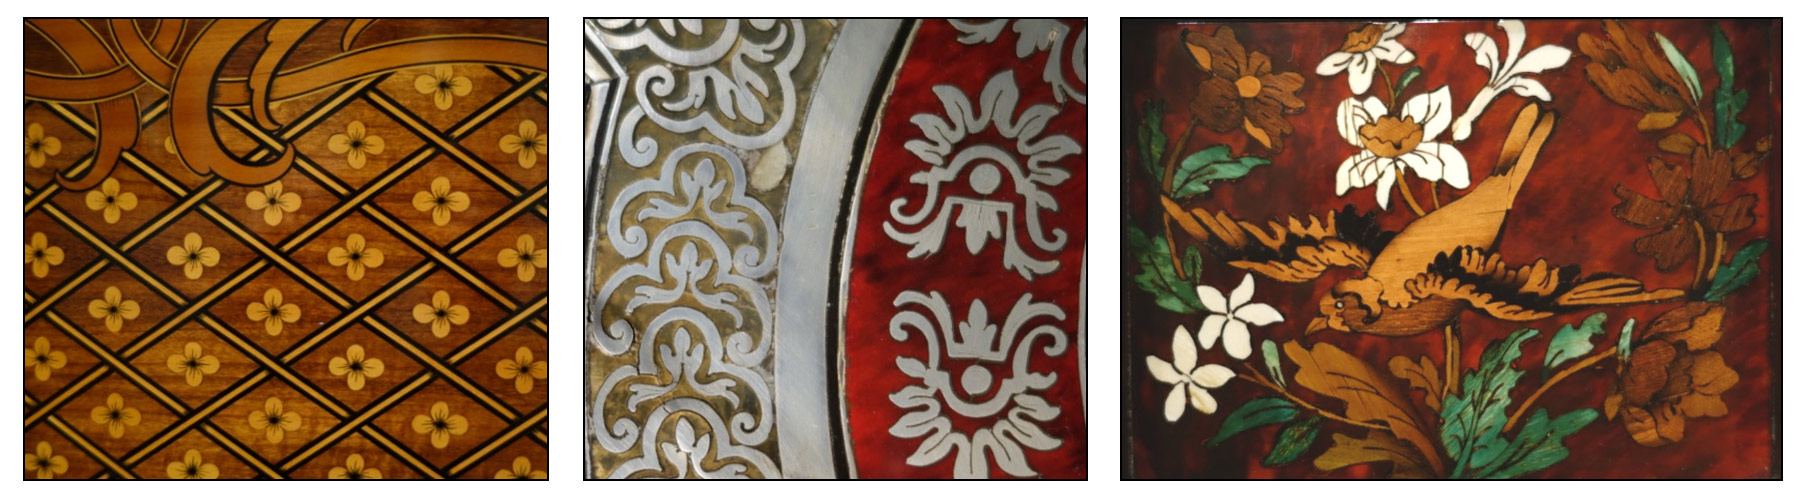 examples of trellis motif in decorative arts at the Legion of Honor